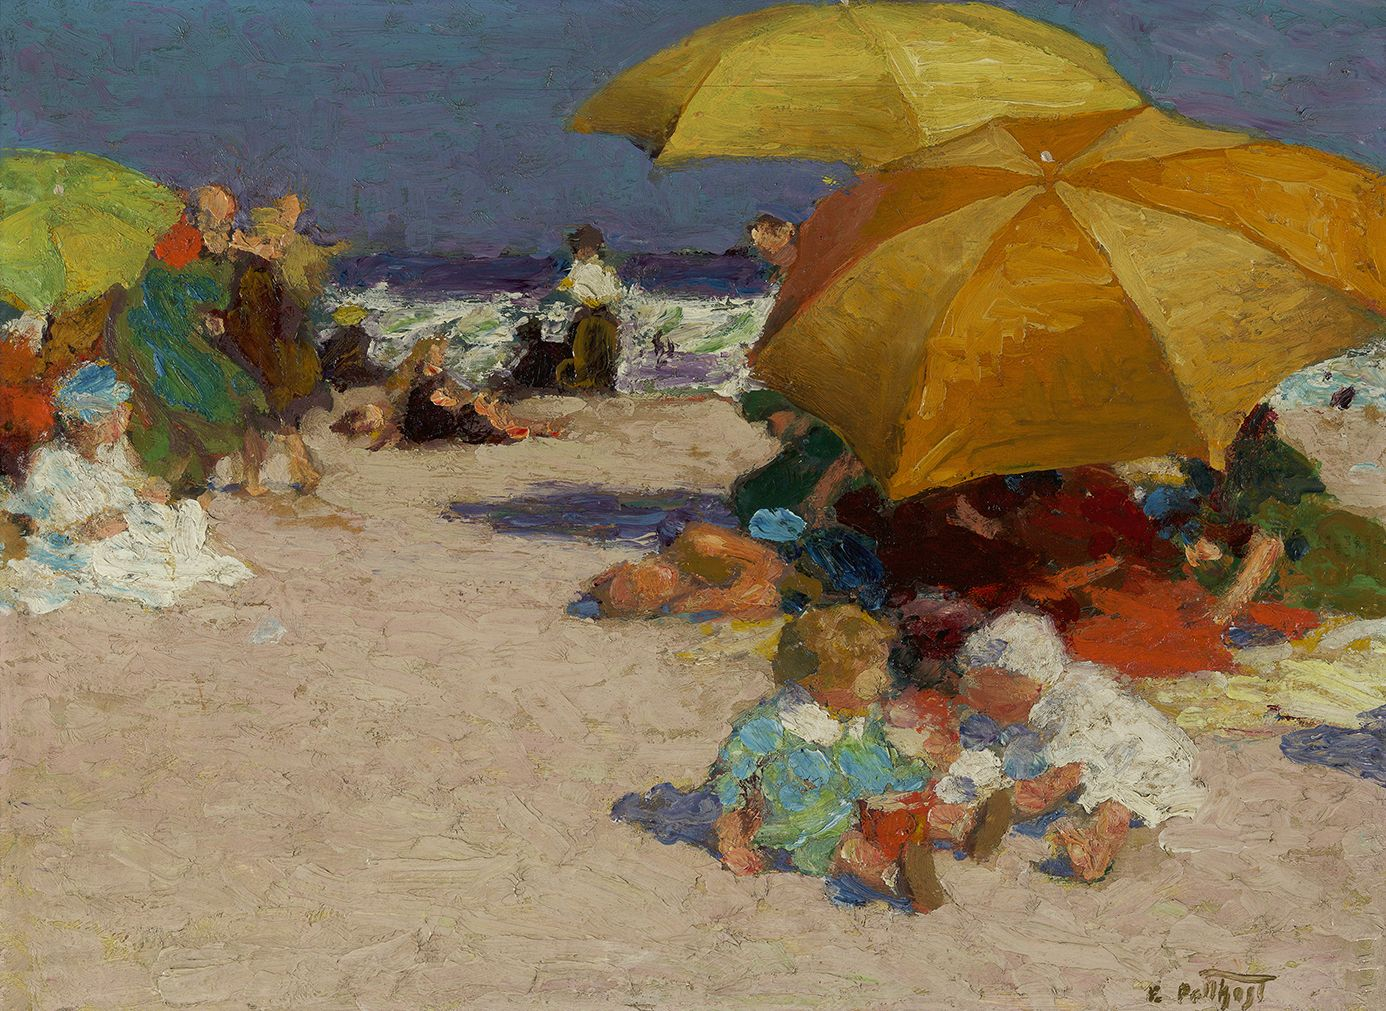 Edward Henry Potthast (1857-1927), On the Sands, circa 1912-1915